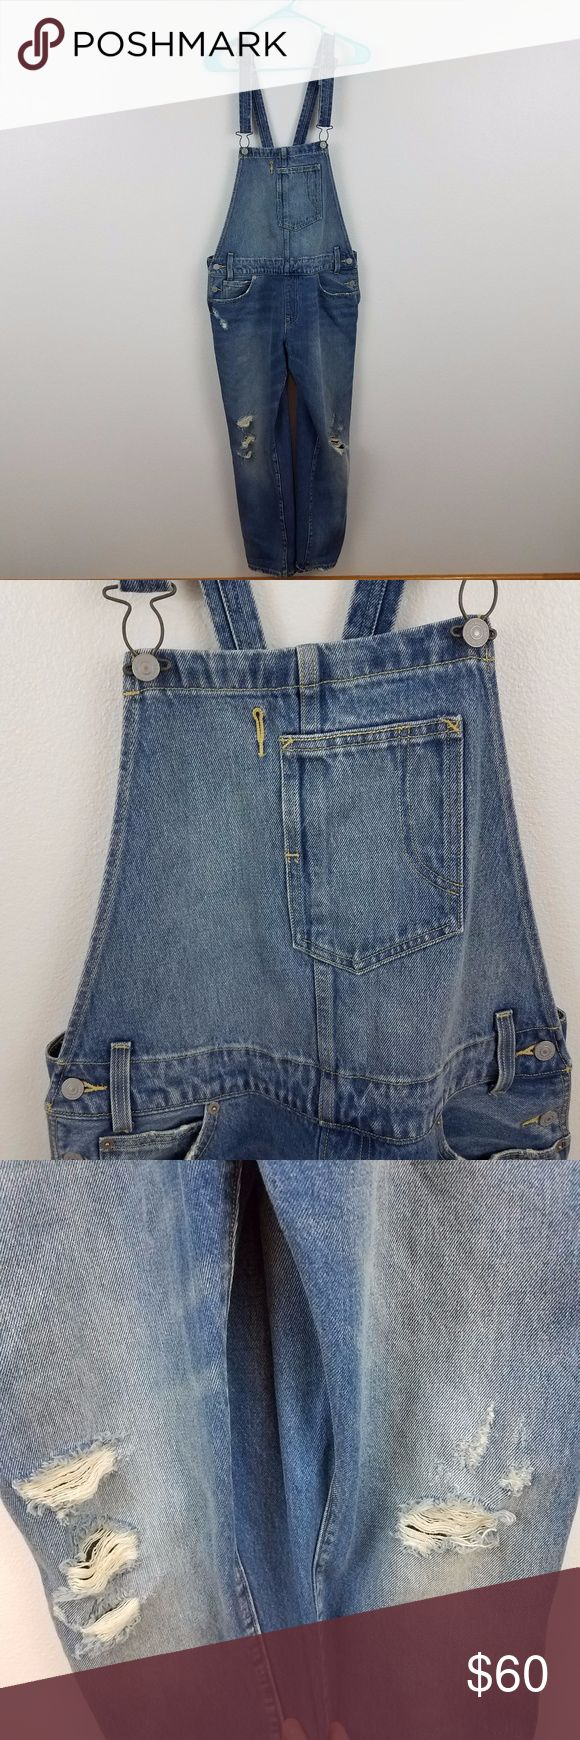 Levis overalls distressed jeans Levis overalls bibs dungarees medium wash distressed M pants jeans denim Size m, see measurements below. Used. No rips, tears, or stains. See photos.  Measurements are taken while item is lying flat.  Length: 58 inches  Waist (x2): 18.5 Inches  Inseam: 28 Inches  Inv BD. Levi's Jeans Overalls